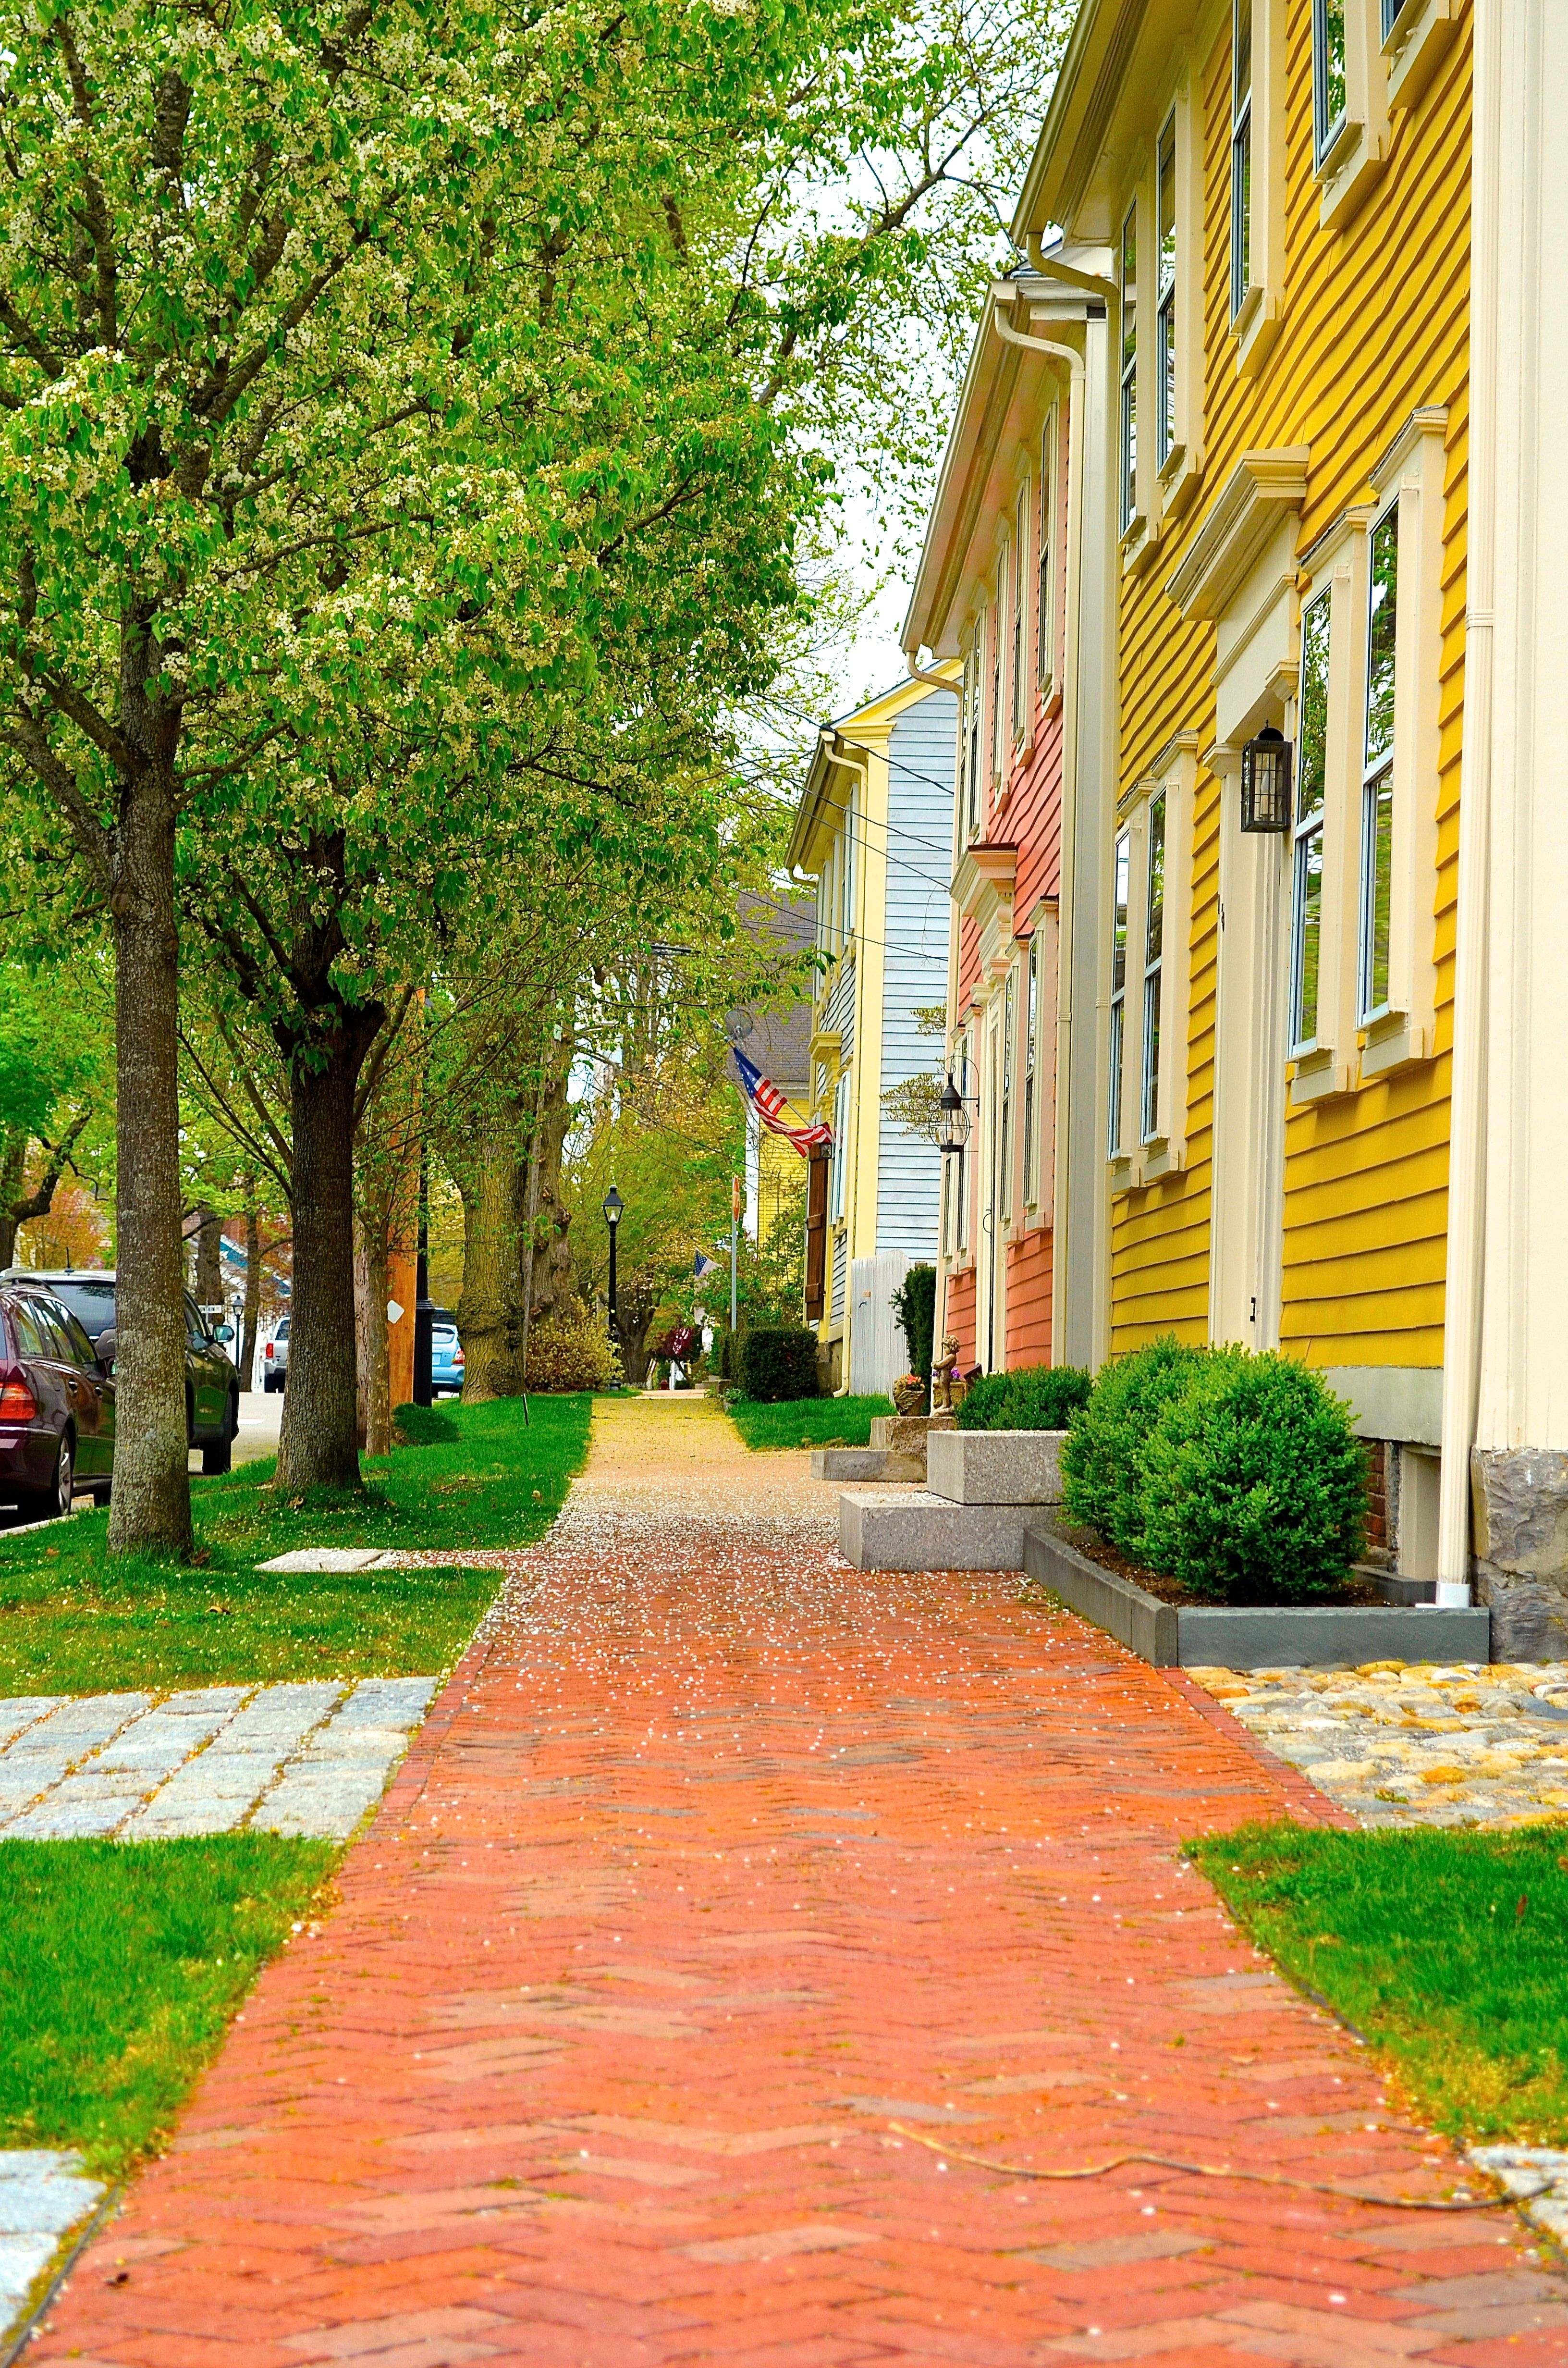 Things To Do In Rhode Island S Historic Wickford Village Rhode Island Travel Places Worth Visiting Rhode Island